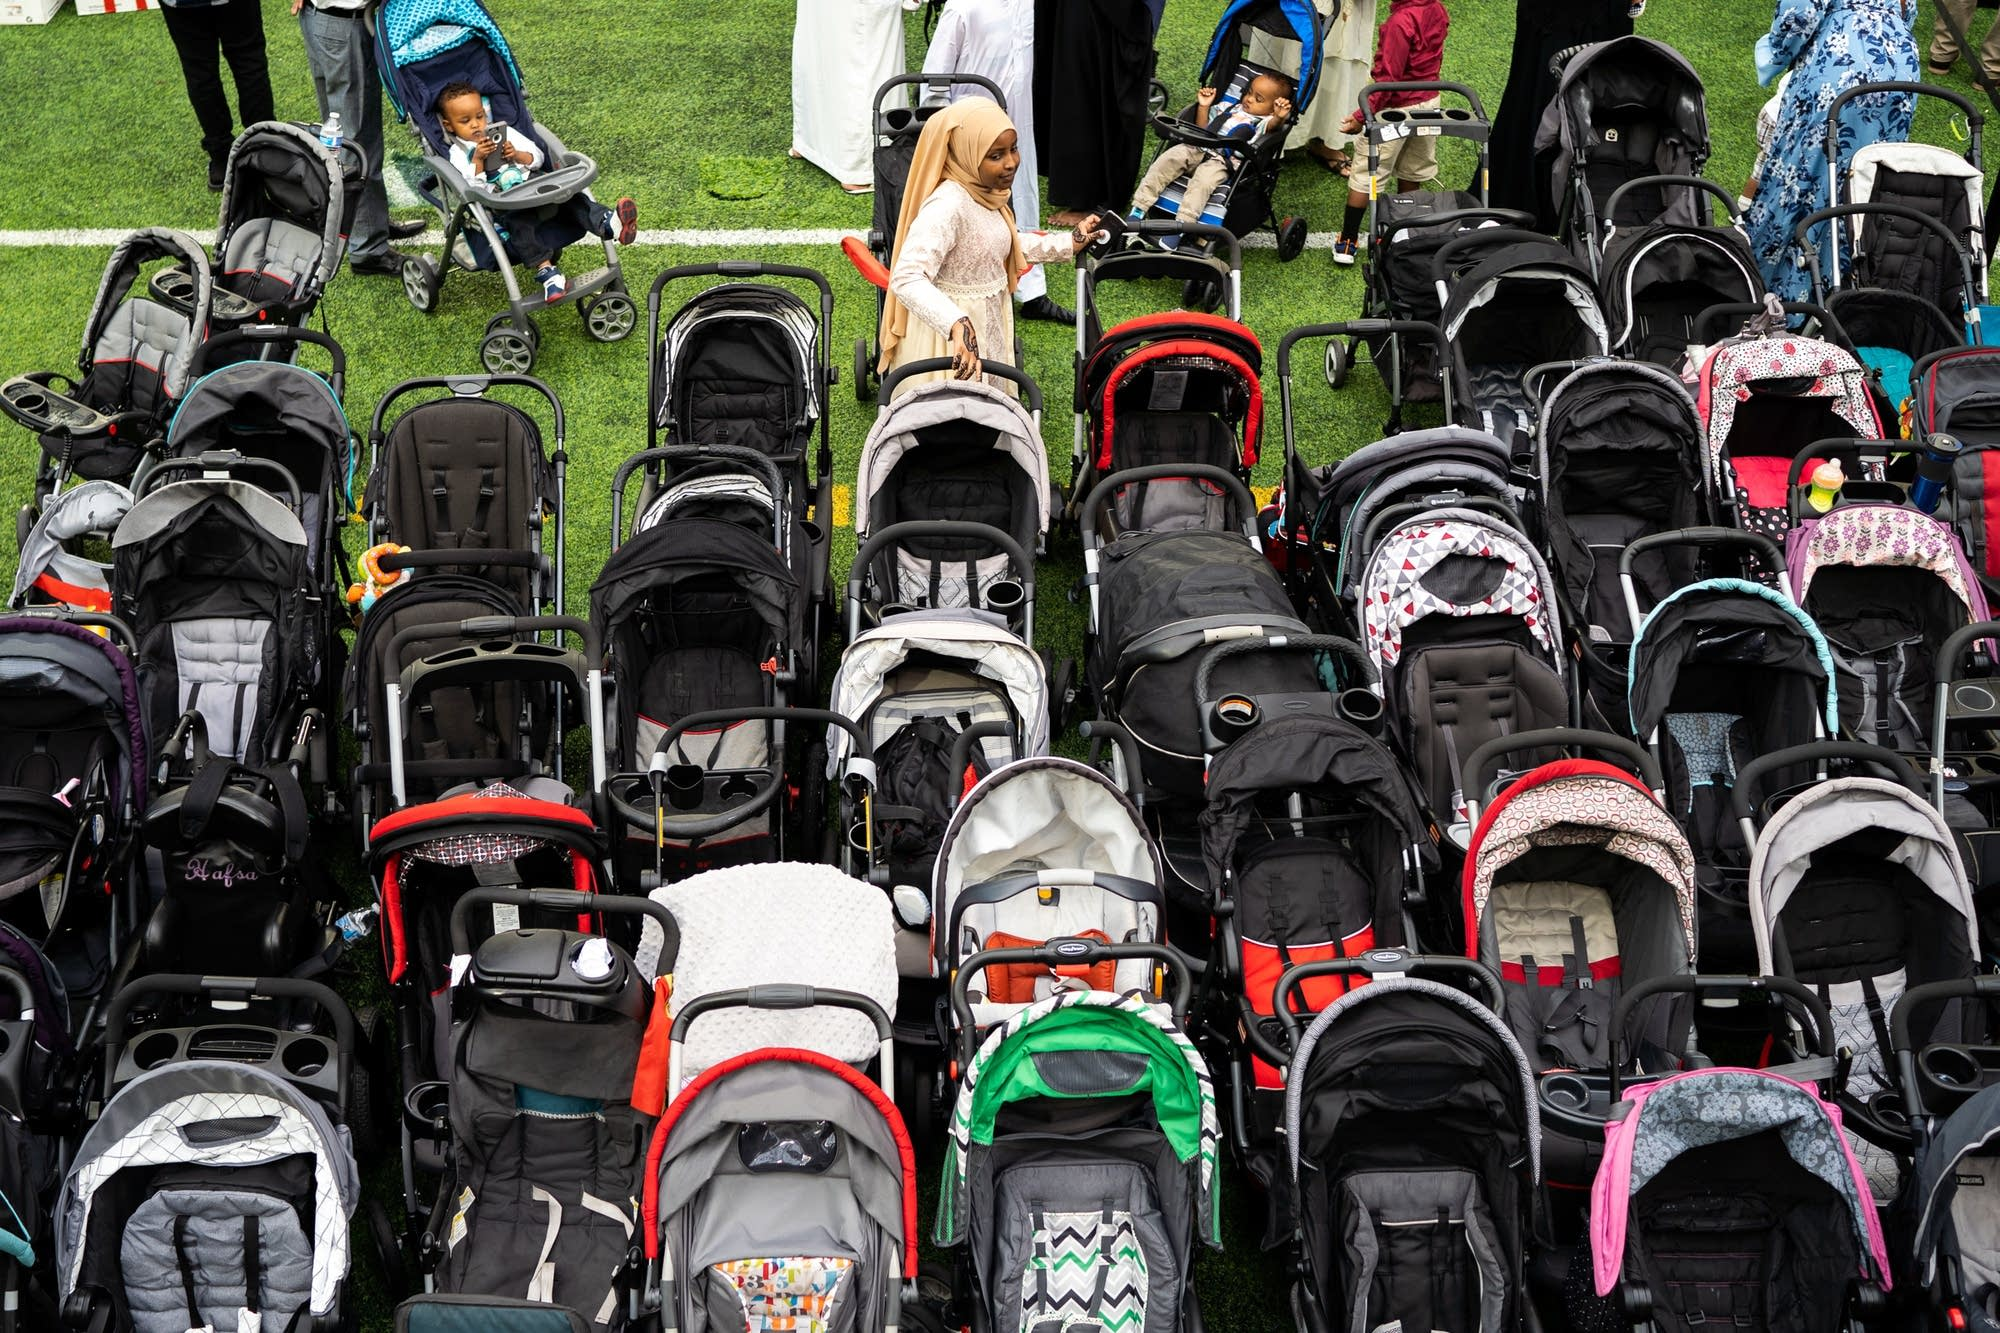 Strollers stack up as people find their spots for morning prayer.